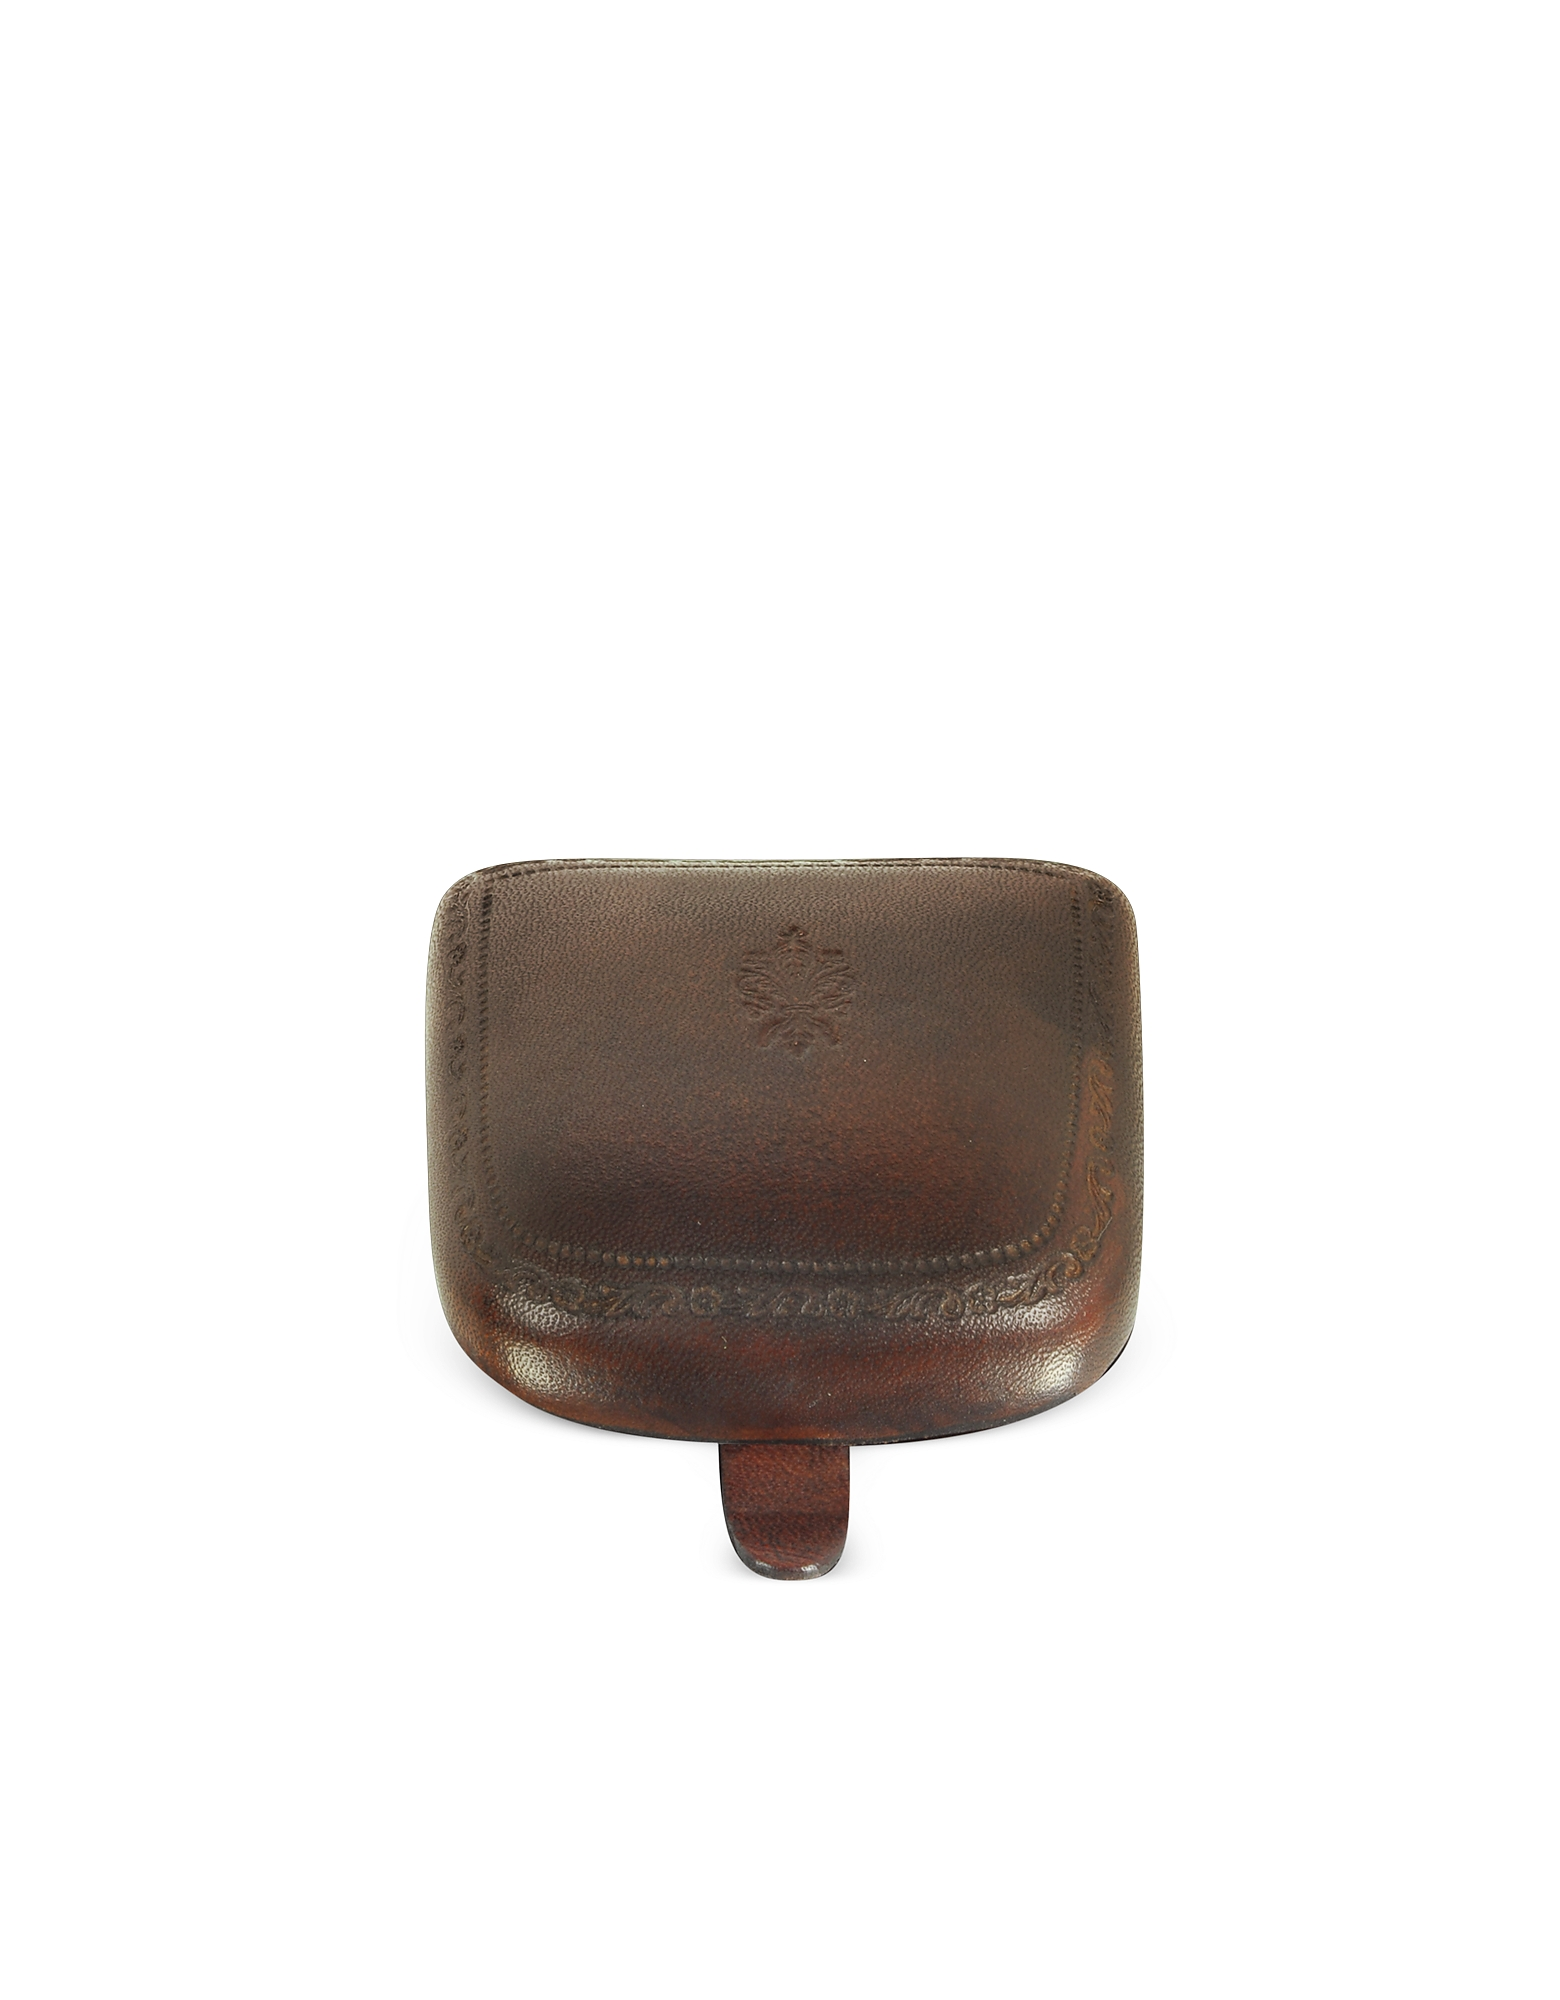 Peroni Small Leather Goods, Brown Leather Coin Purse